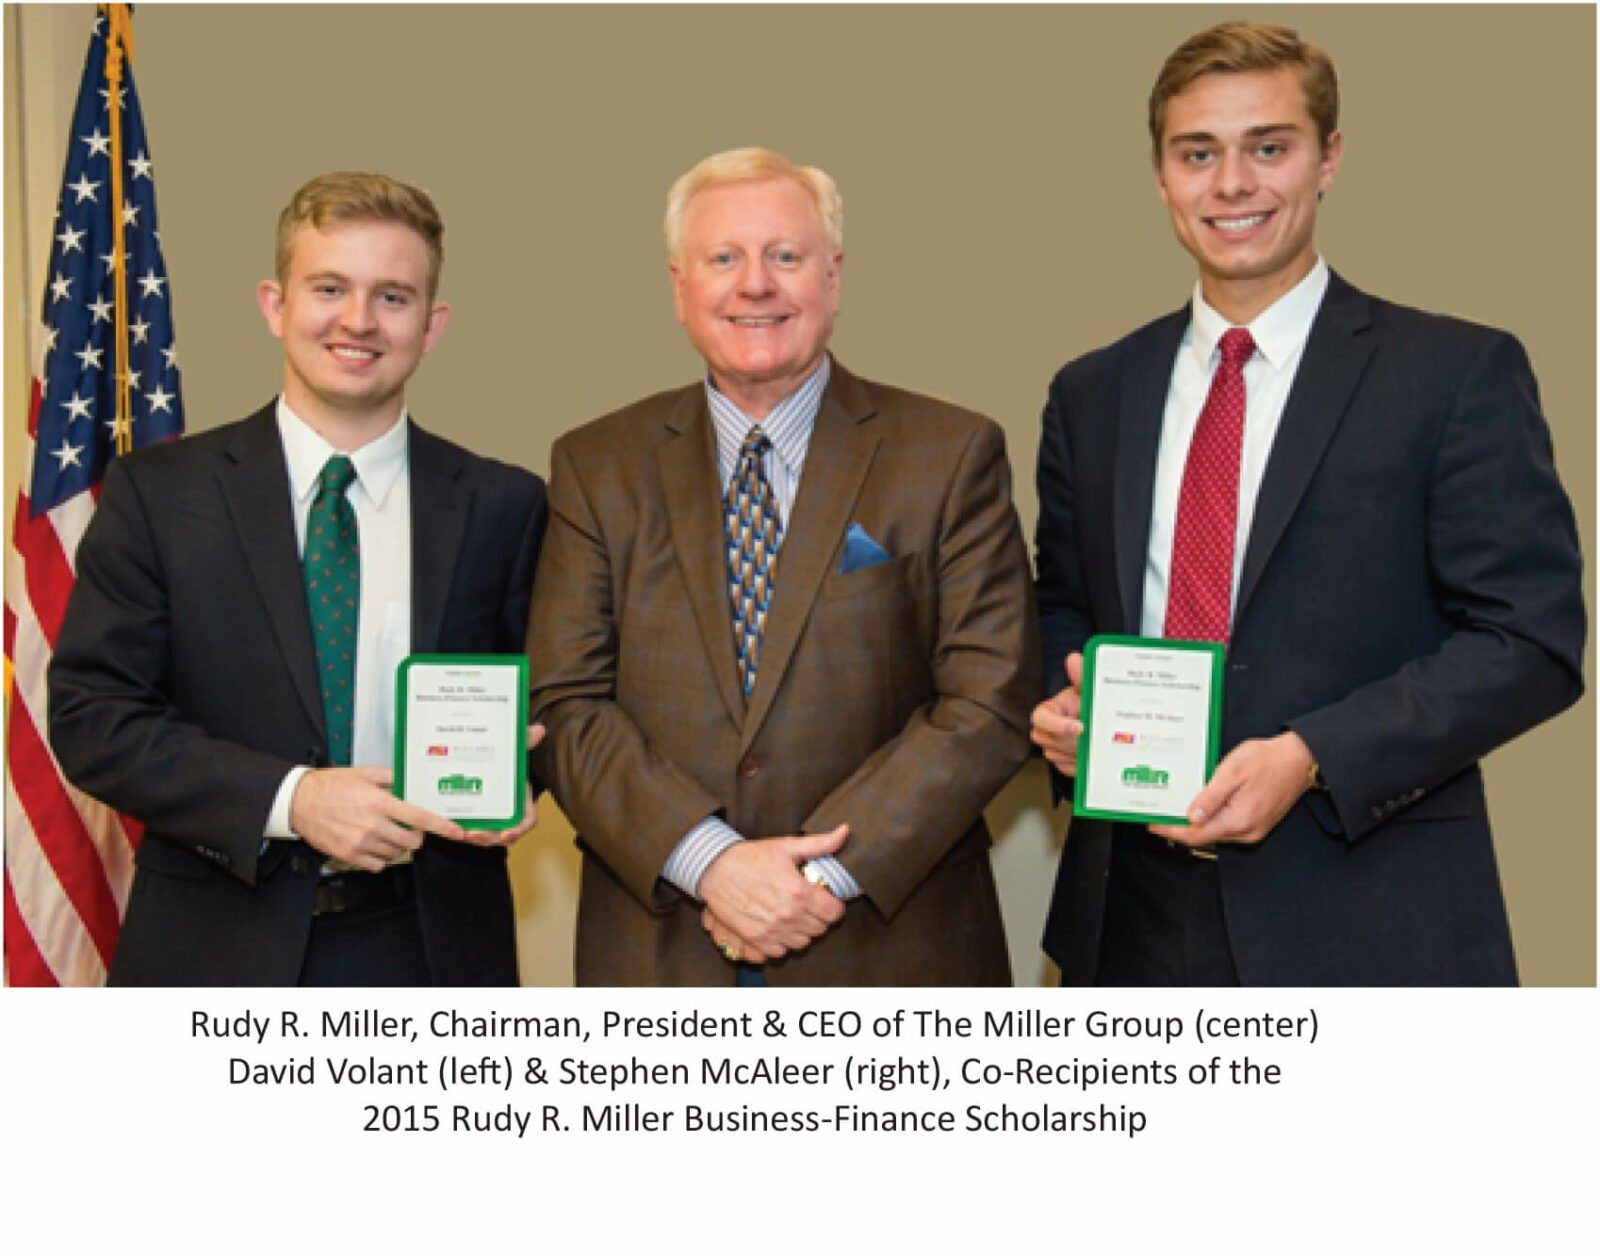 The Miller Group Announces Co-Recipients of the Eighth Annual Rudy R. Miller Business – Finance Scholarship to Arizona State University Students